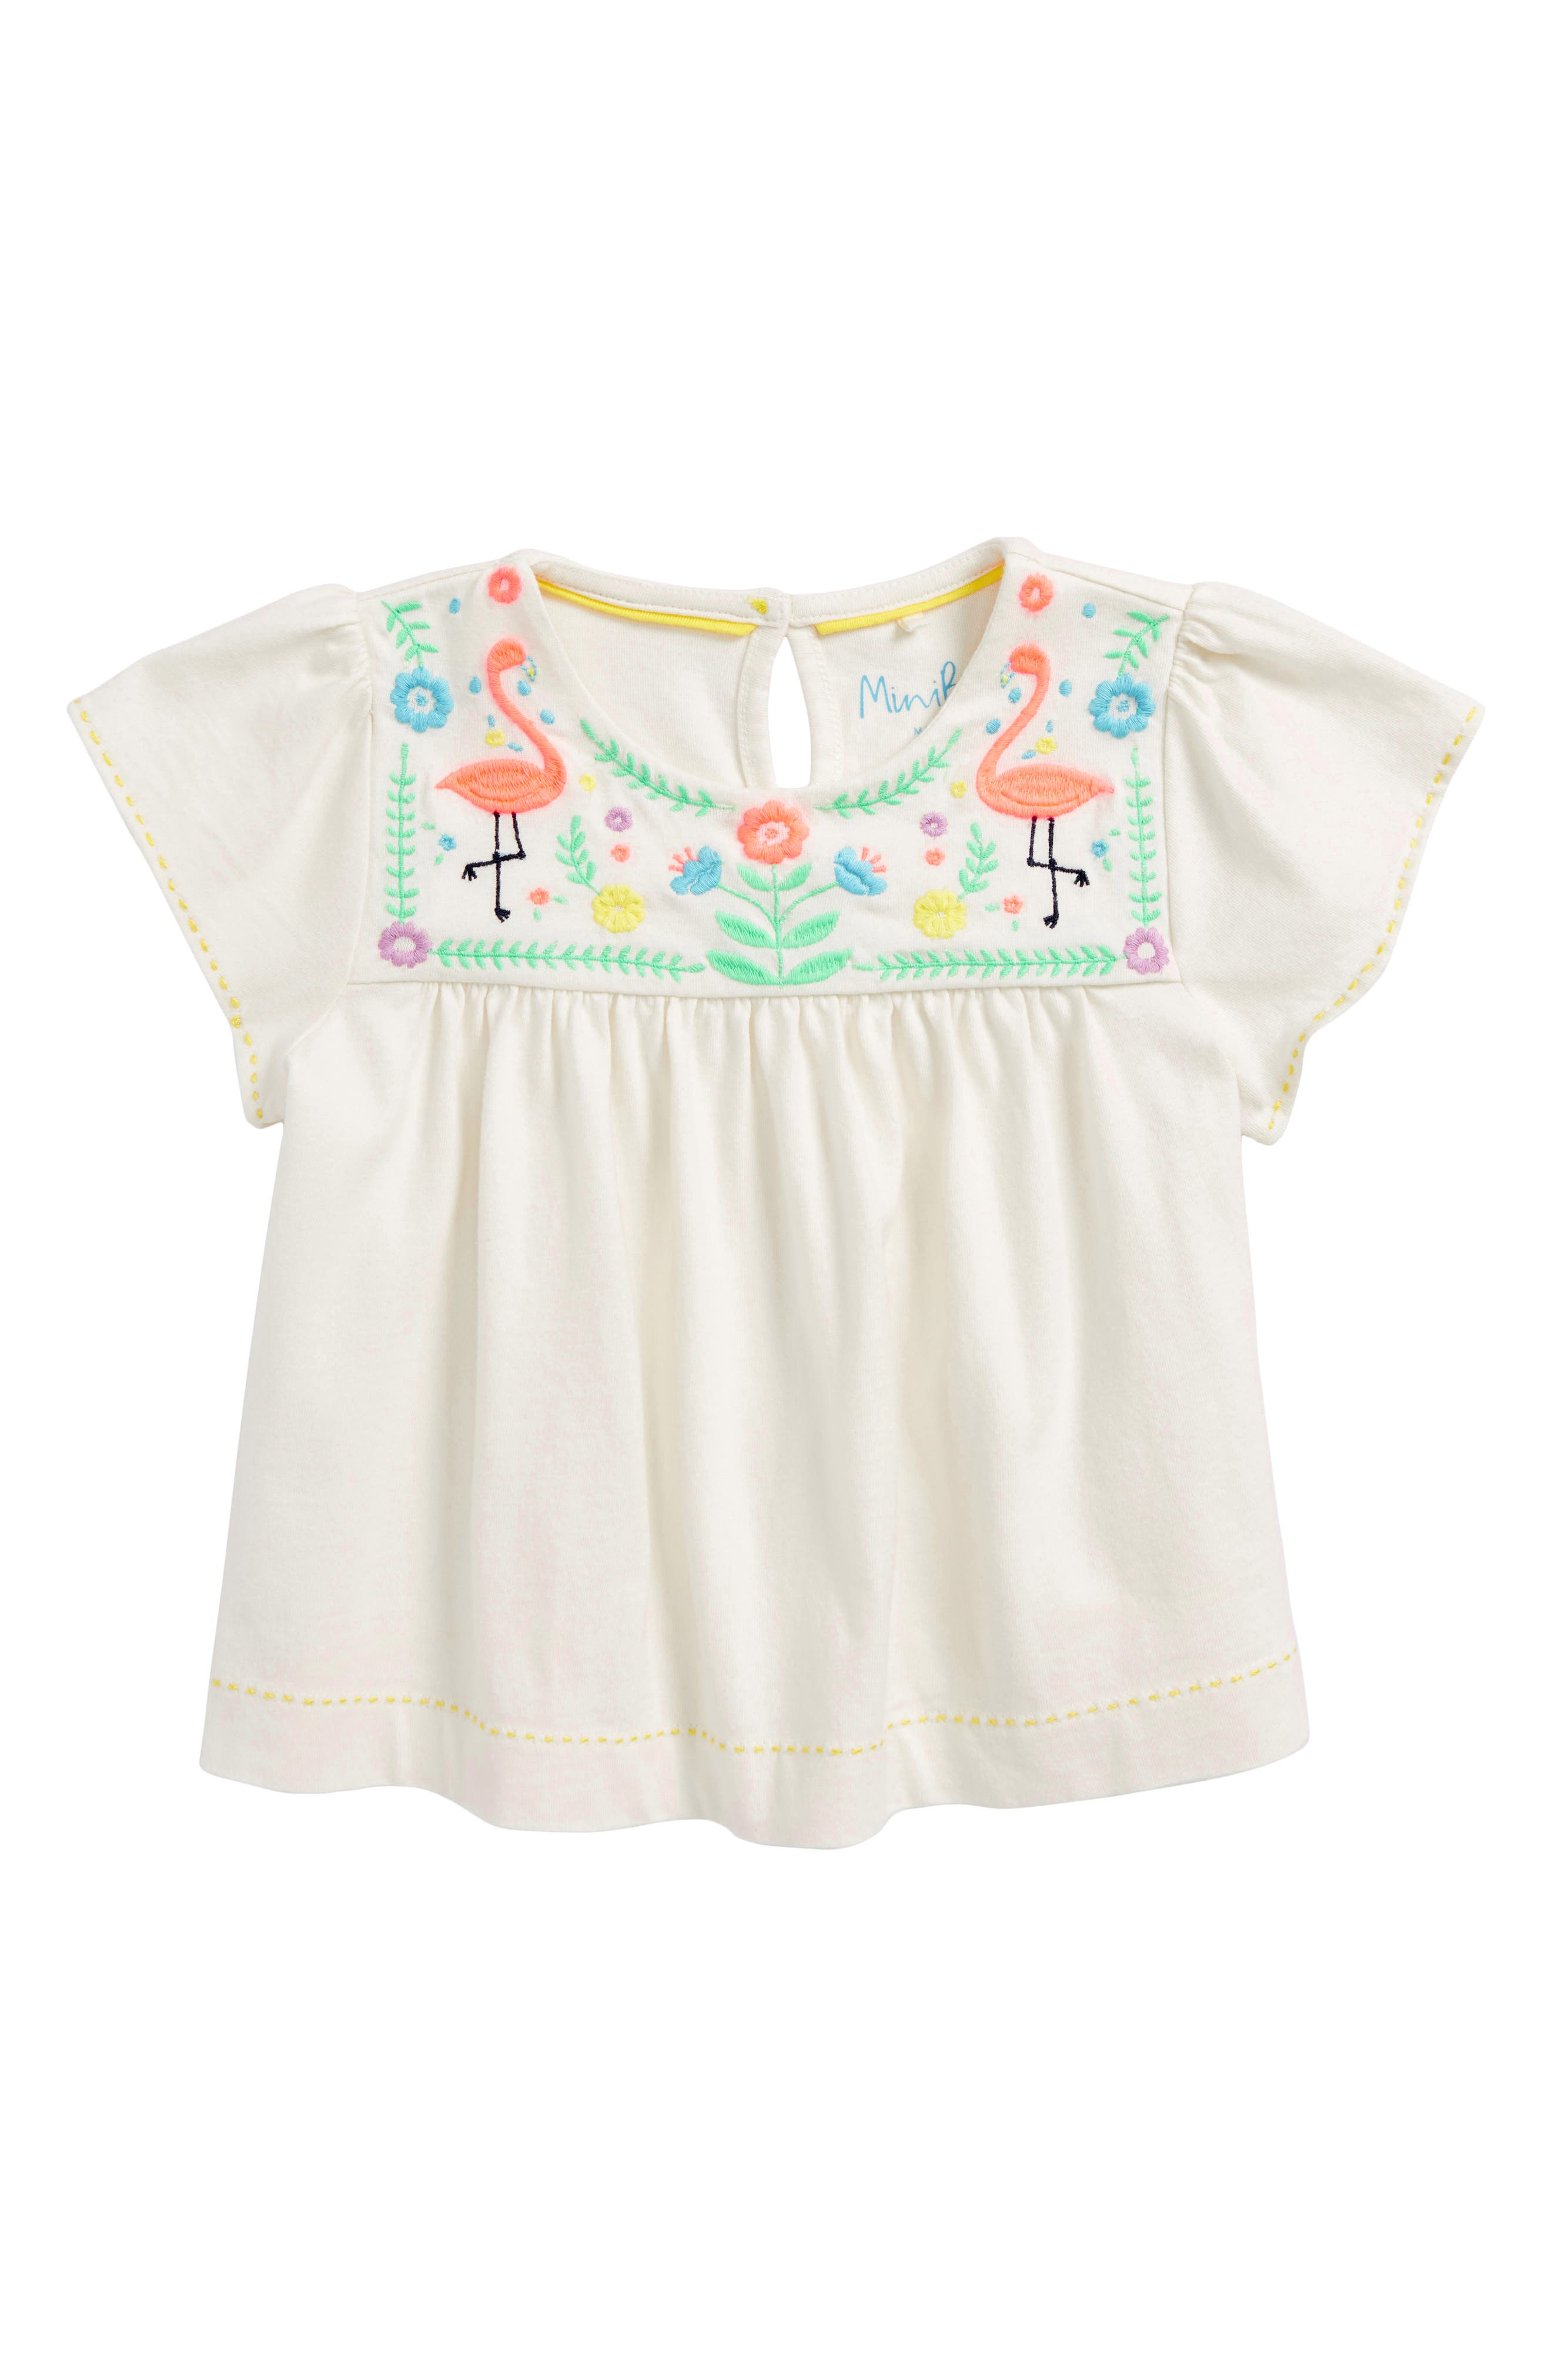 Embroidered Joke Top,                         Main,                         color, Ivory/ Multi